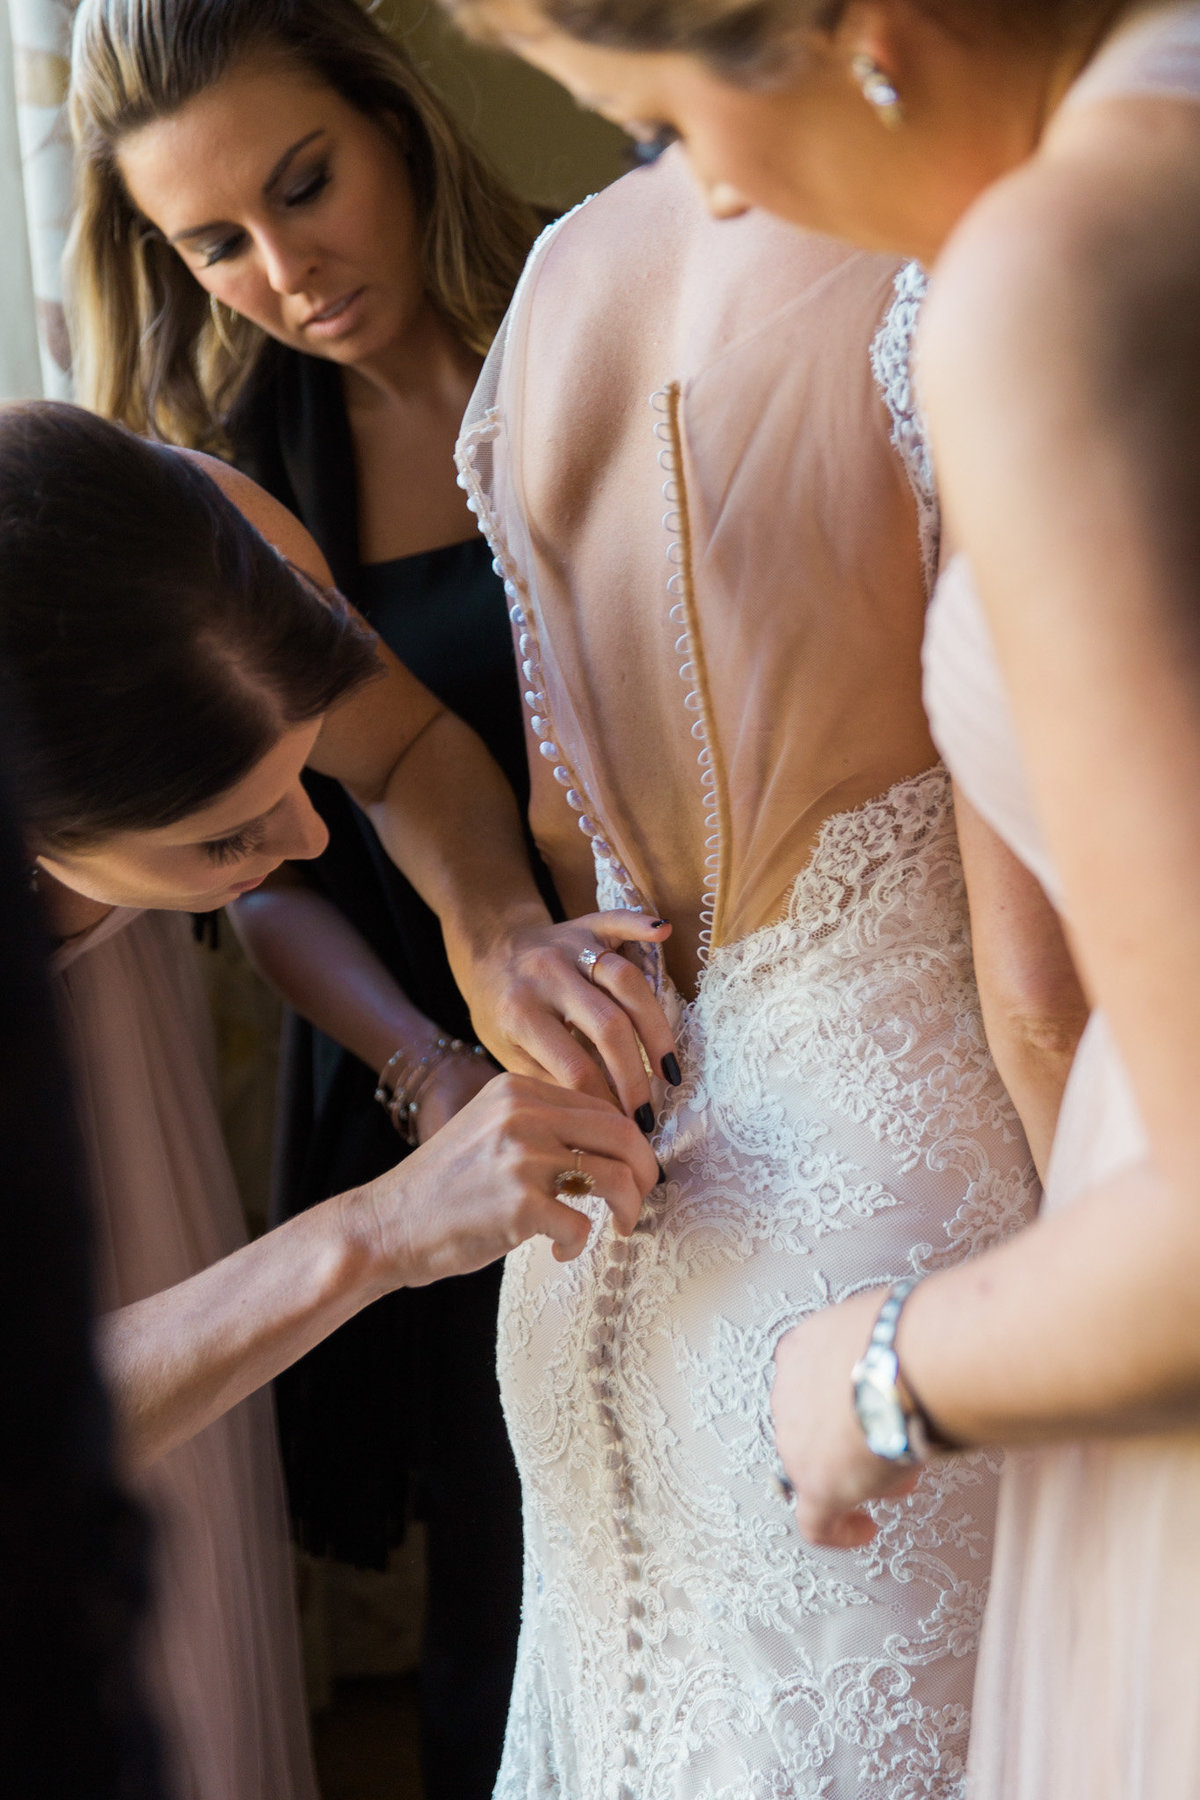 Luxury wedding photographer Rebecca Cerasani photographs bridesmaids as they button the brides intricate wedding dress.